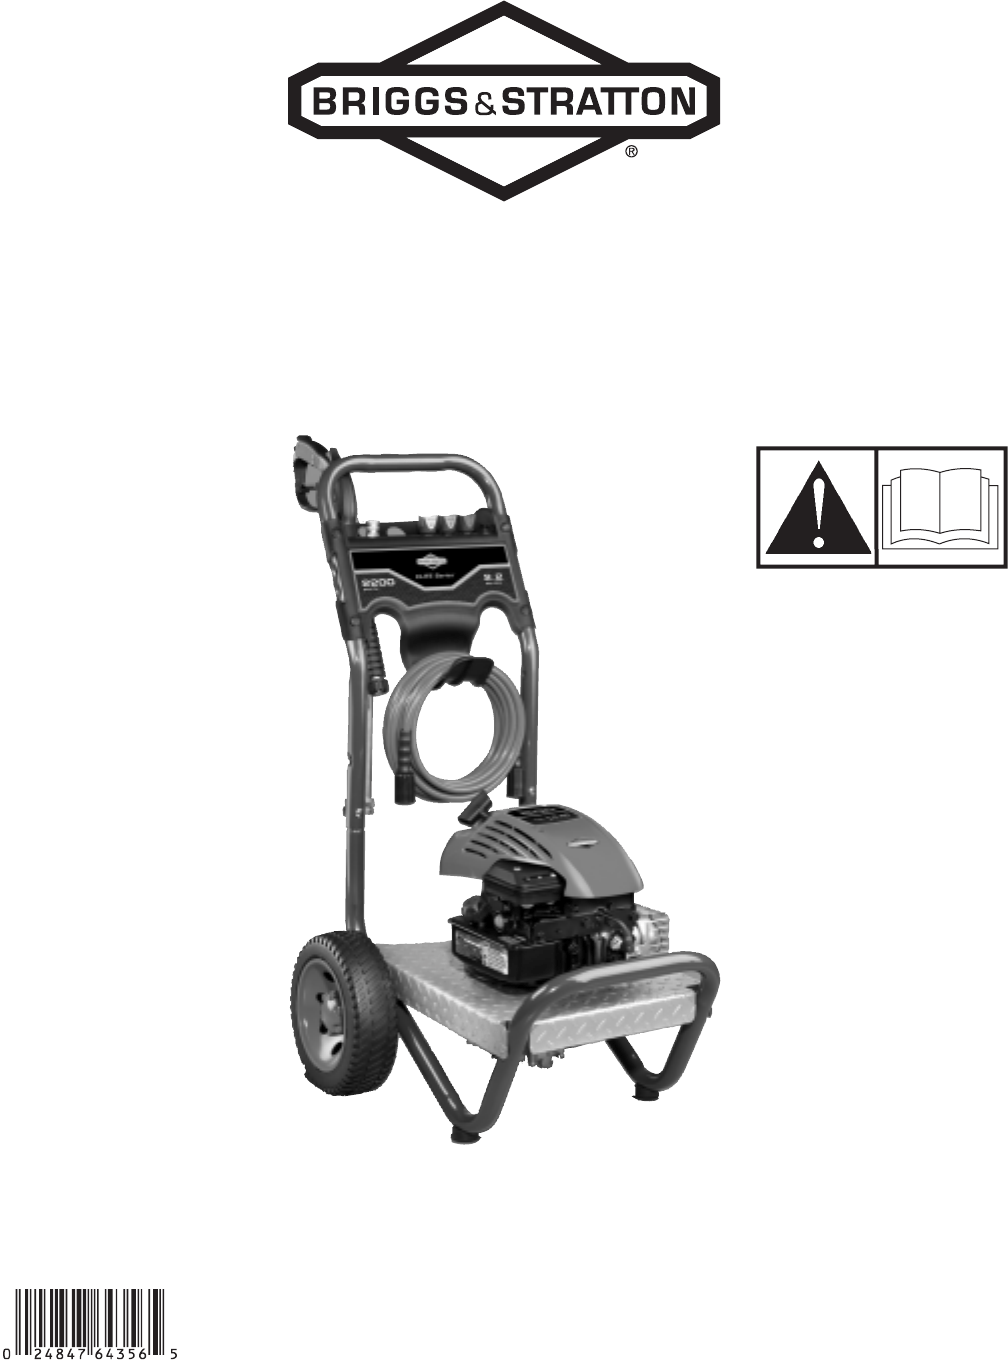 Briggs & Stratton Pressure Washer 20272 User Guide